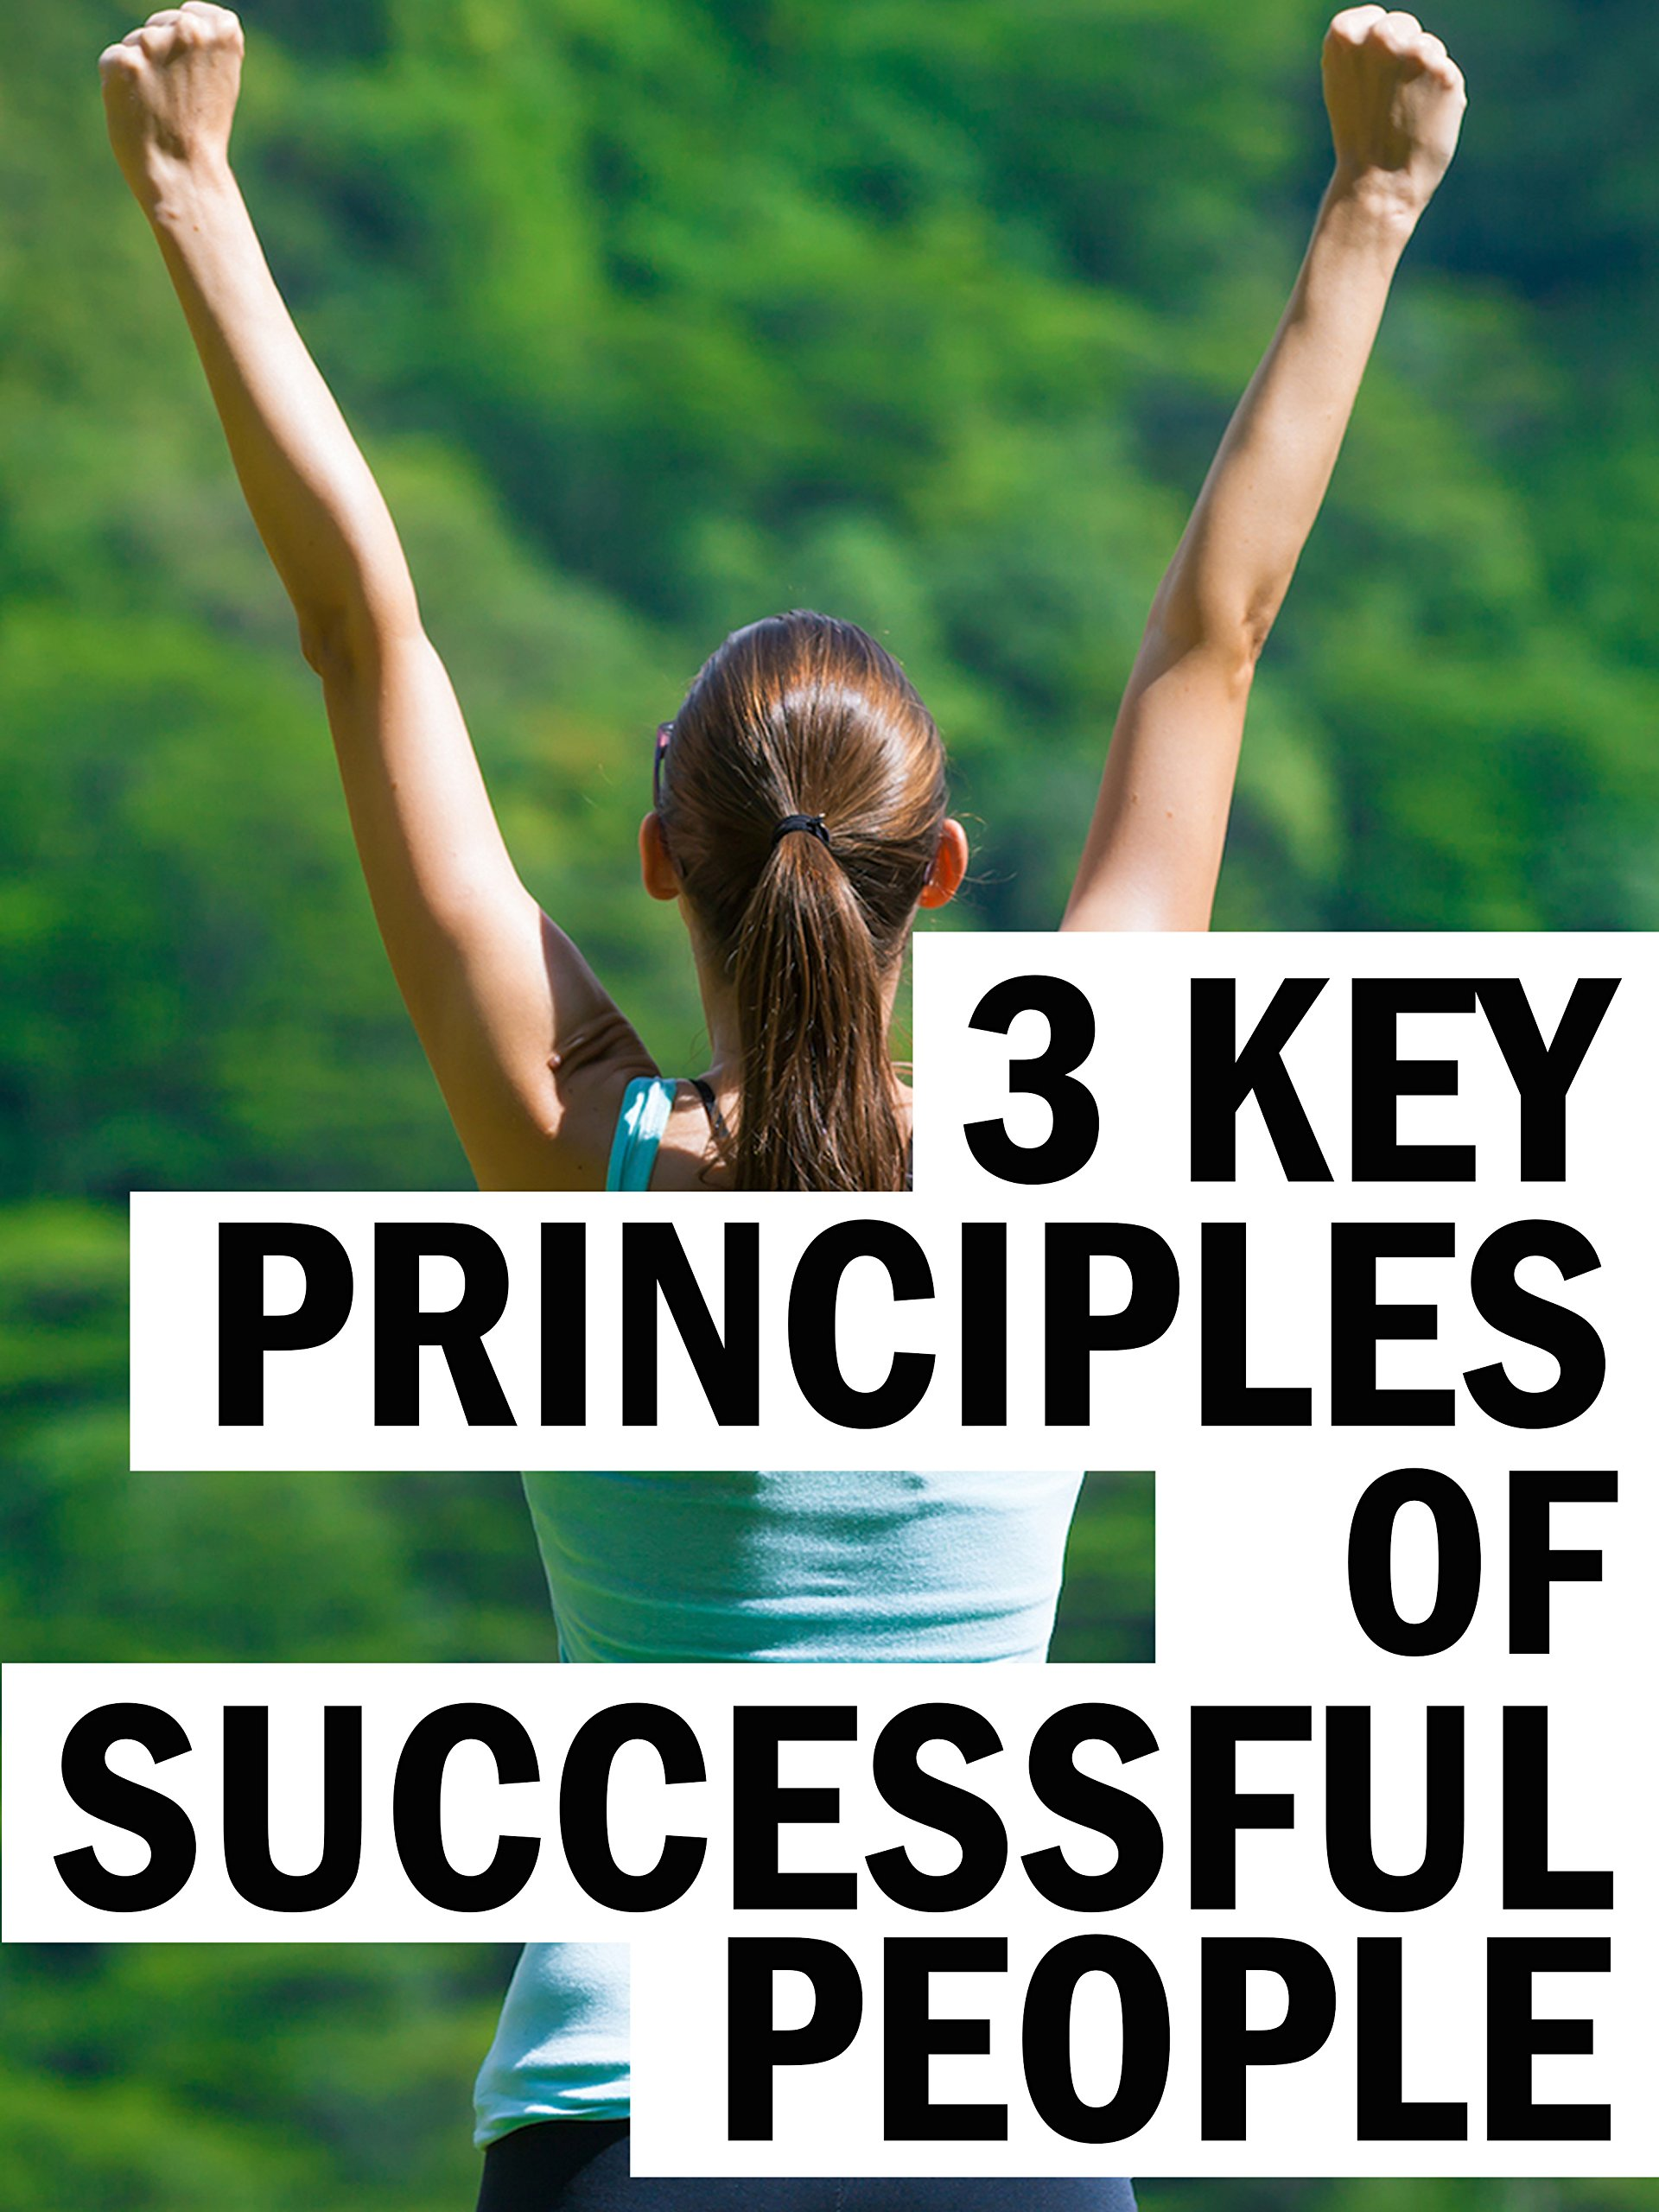 3 Key Principles of Successful People